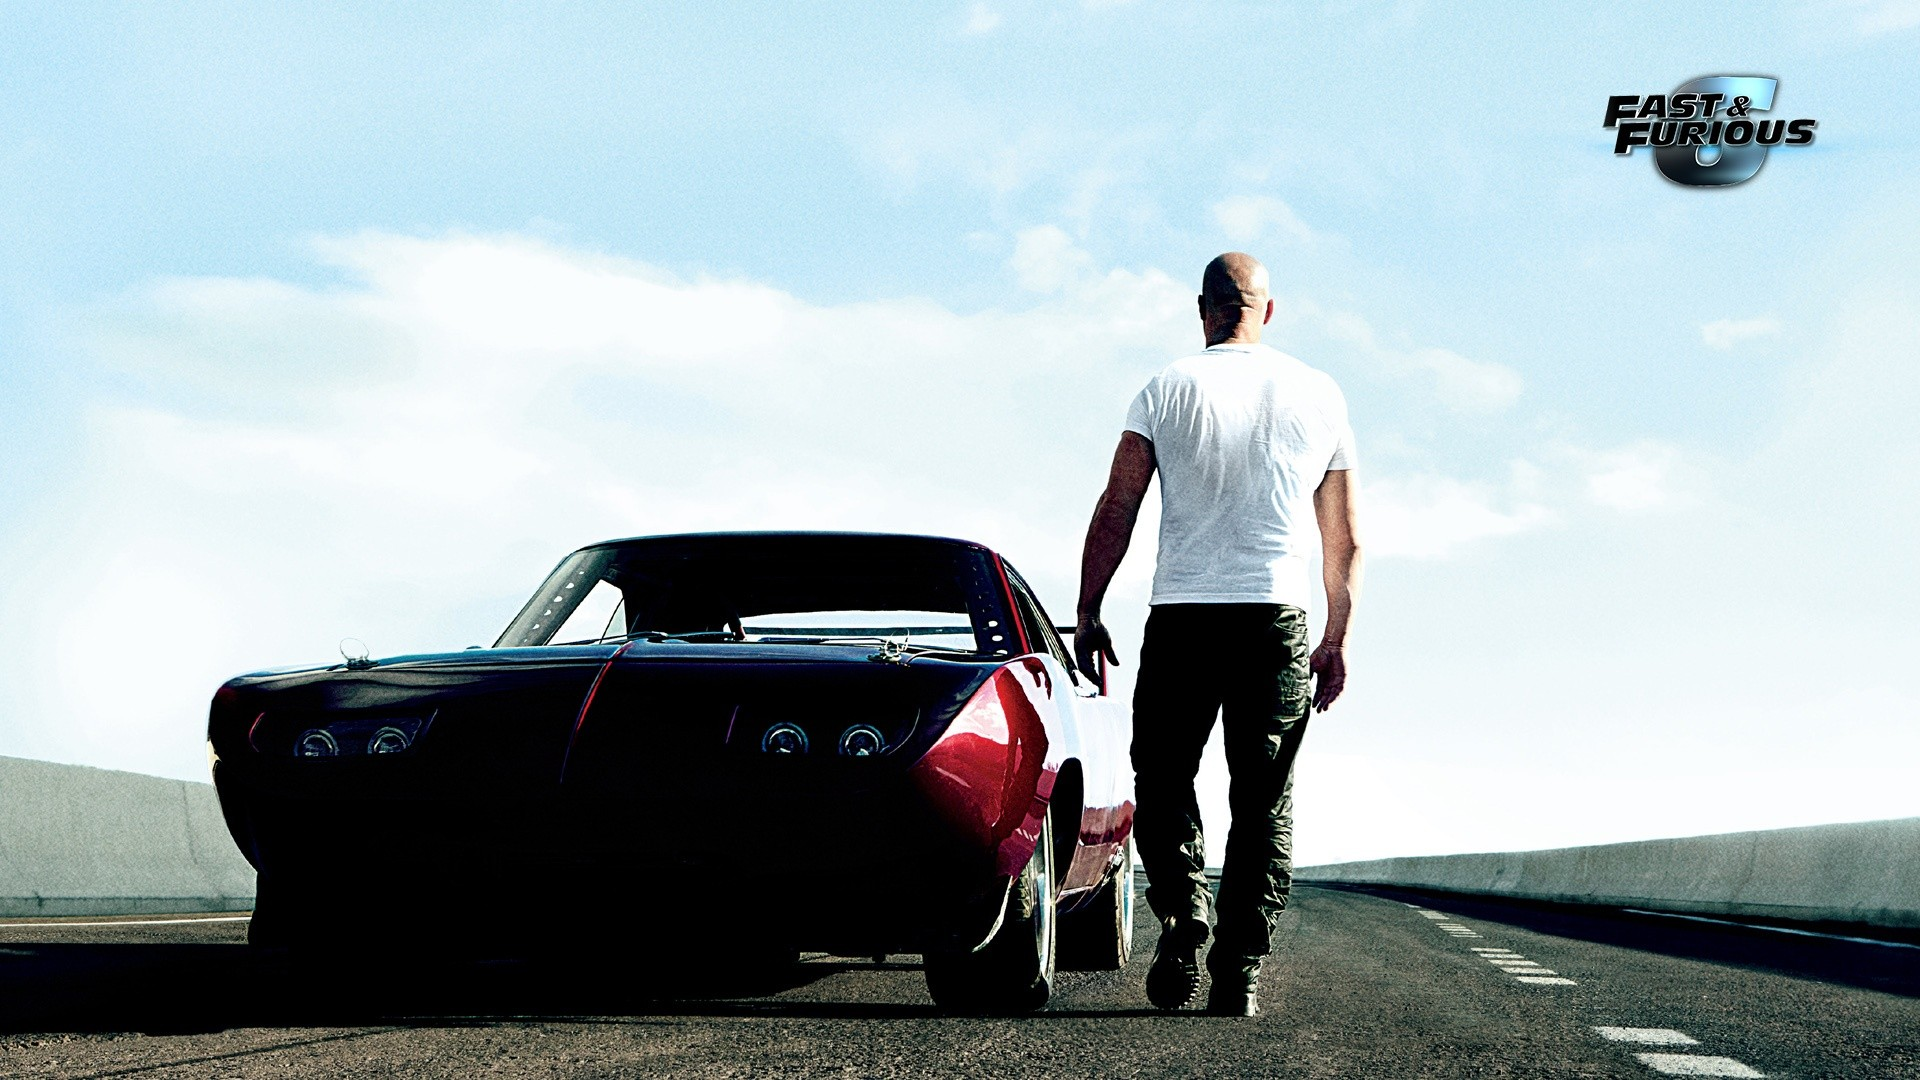 Vin Diesel Classic Car Classic Fast Furious Hot Rods Muscle